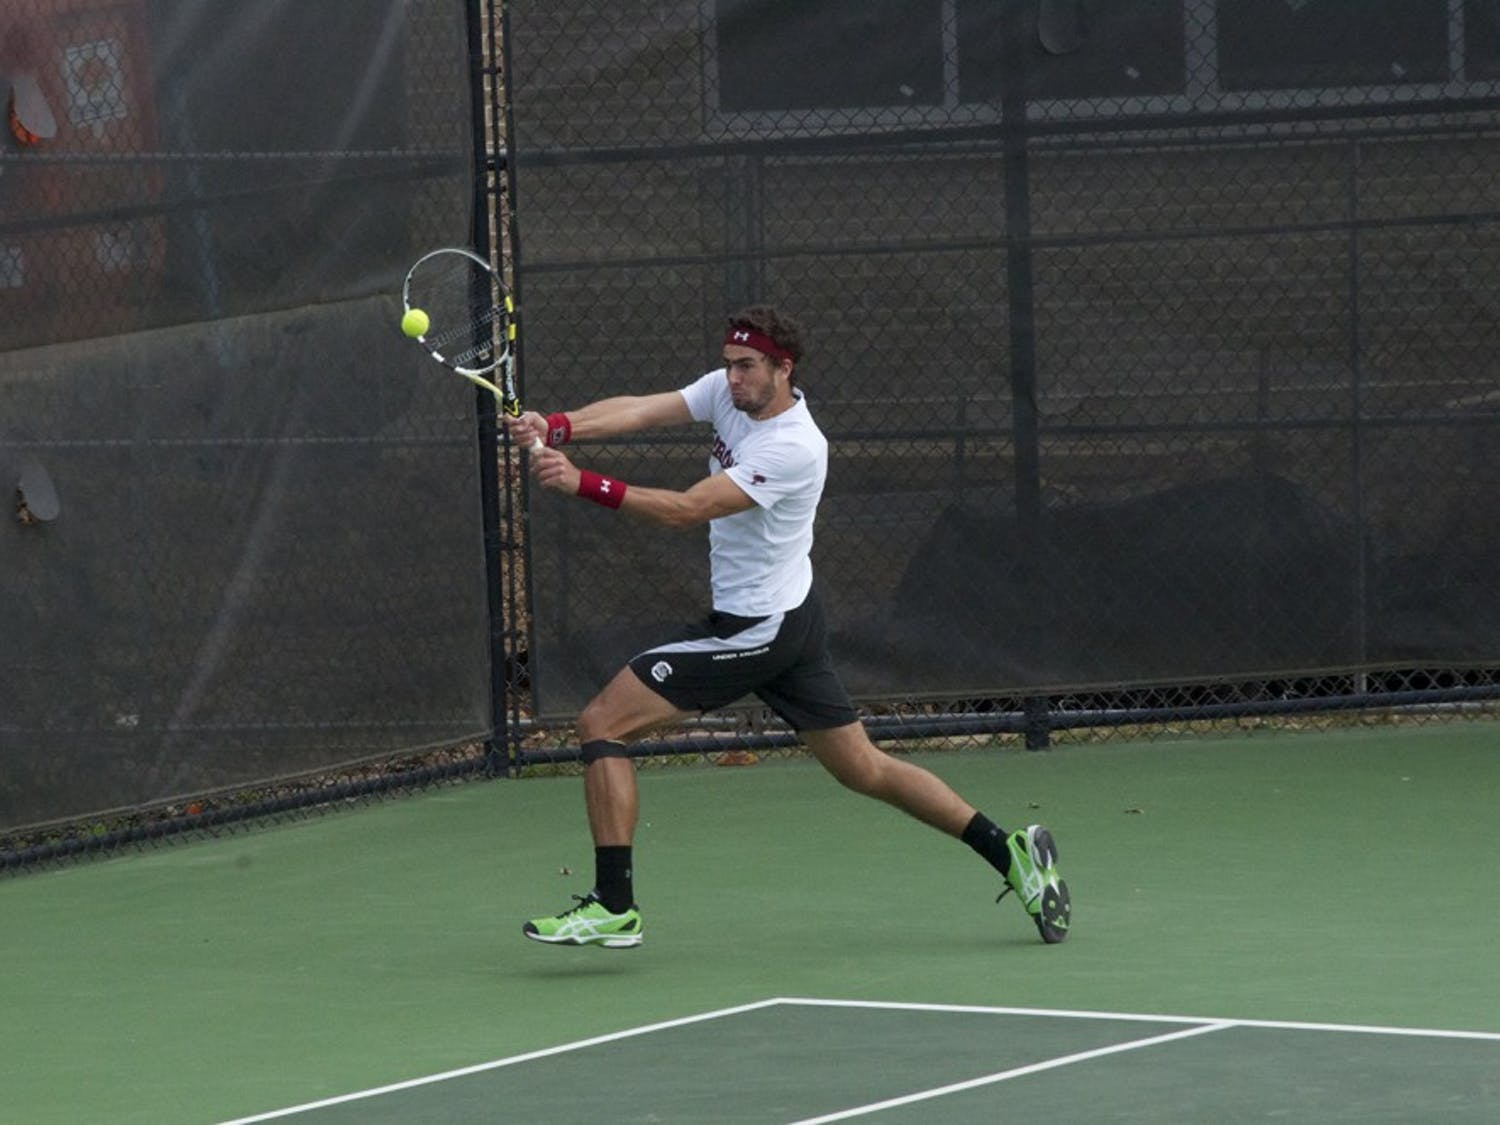 Sophomore Thiago Pinheiro (pictured) was able to cheer on sophomore teammate Kyle Koch during a break in his match.